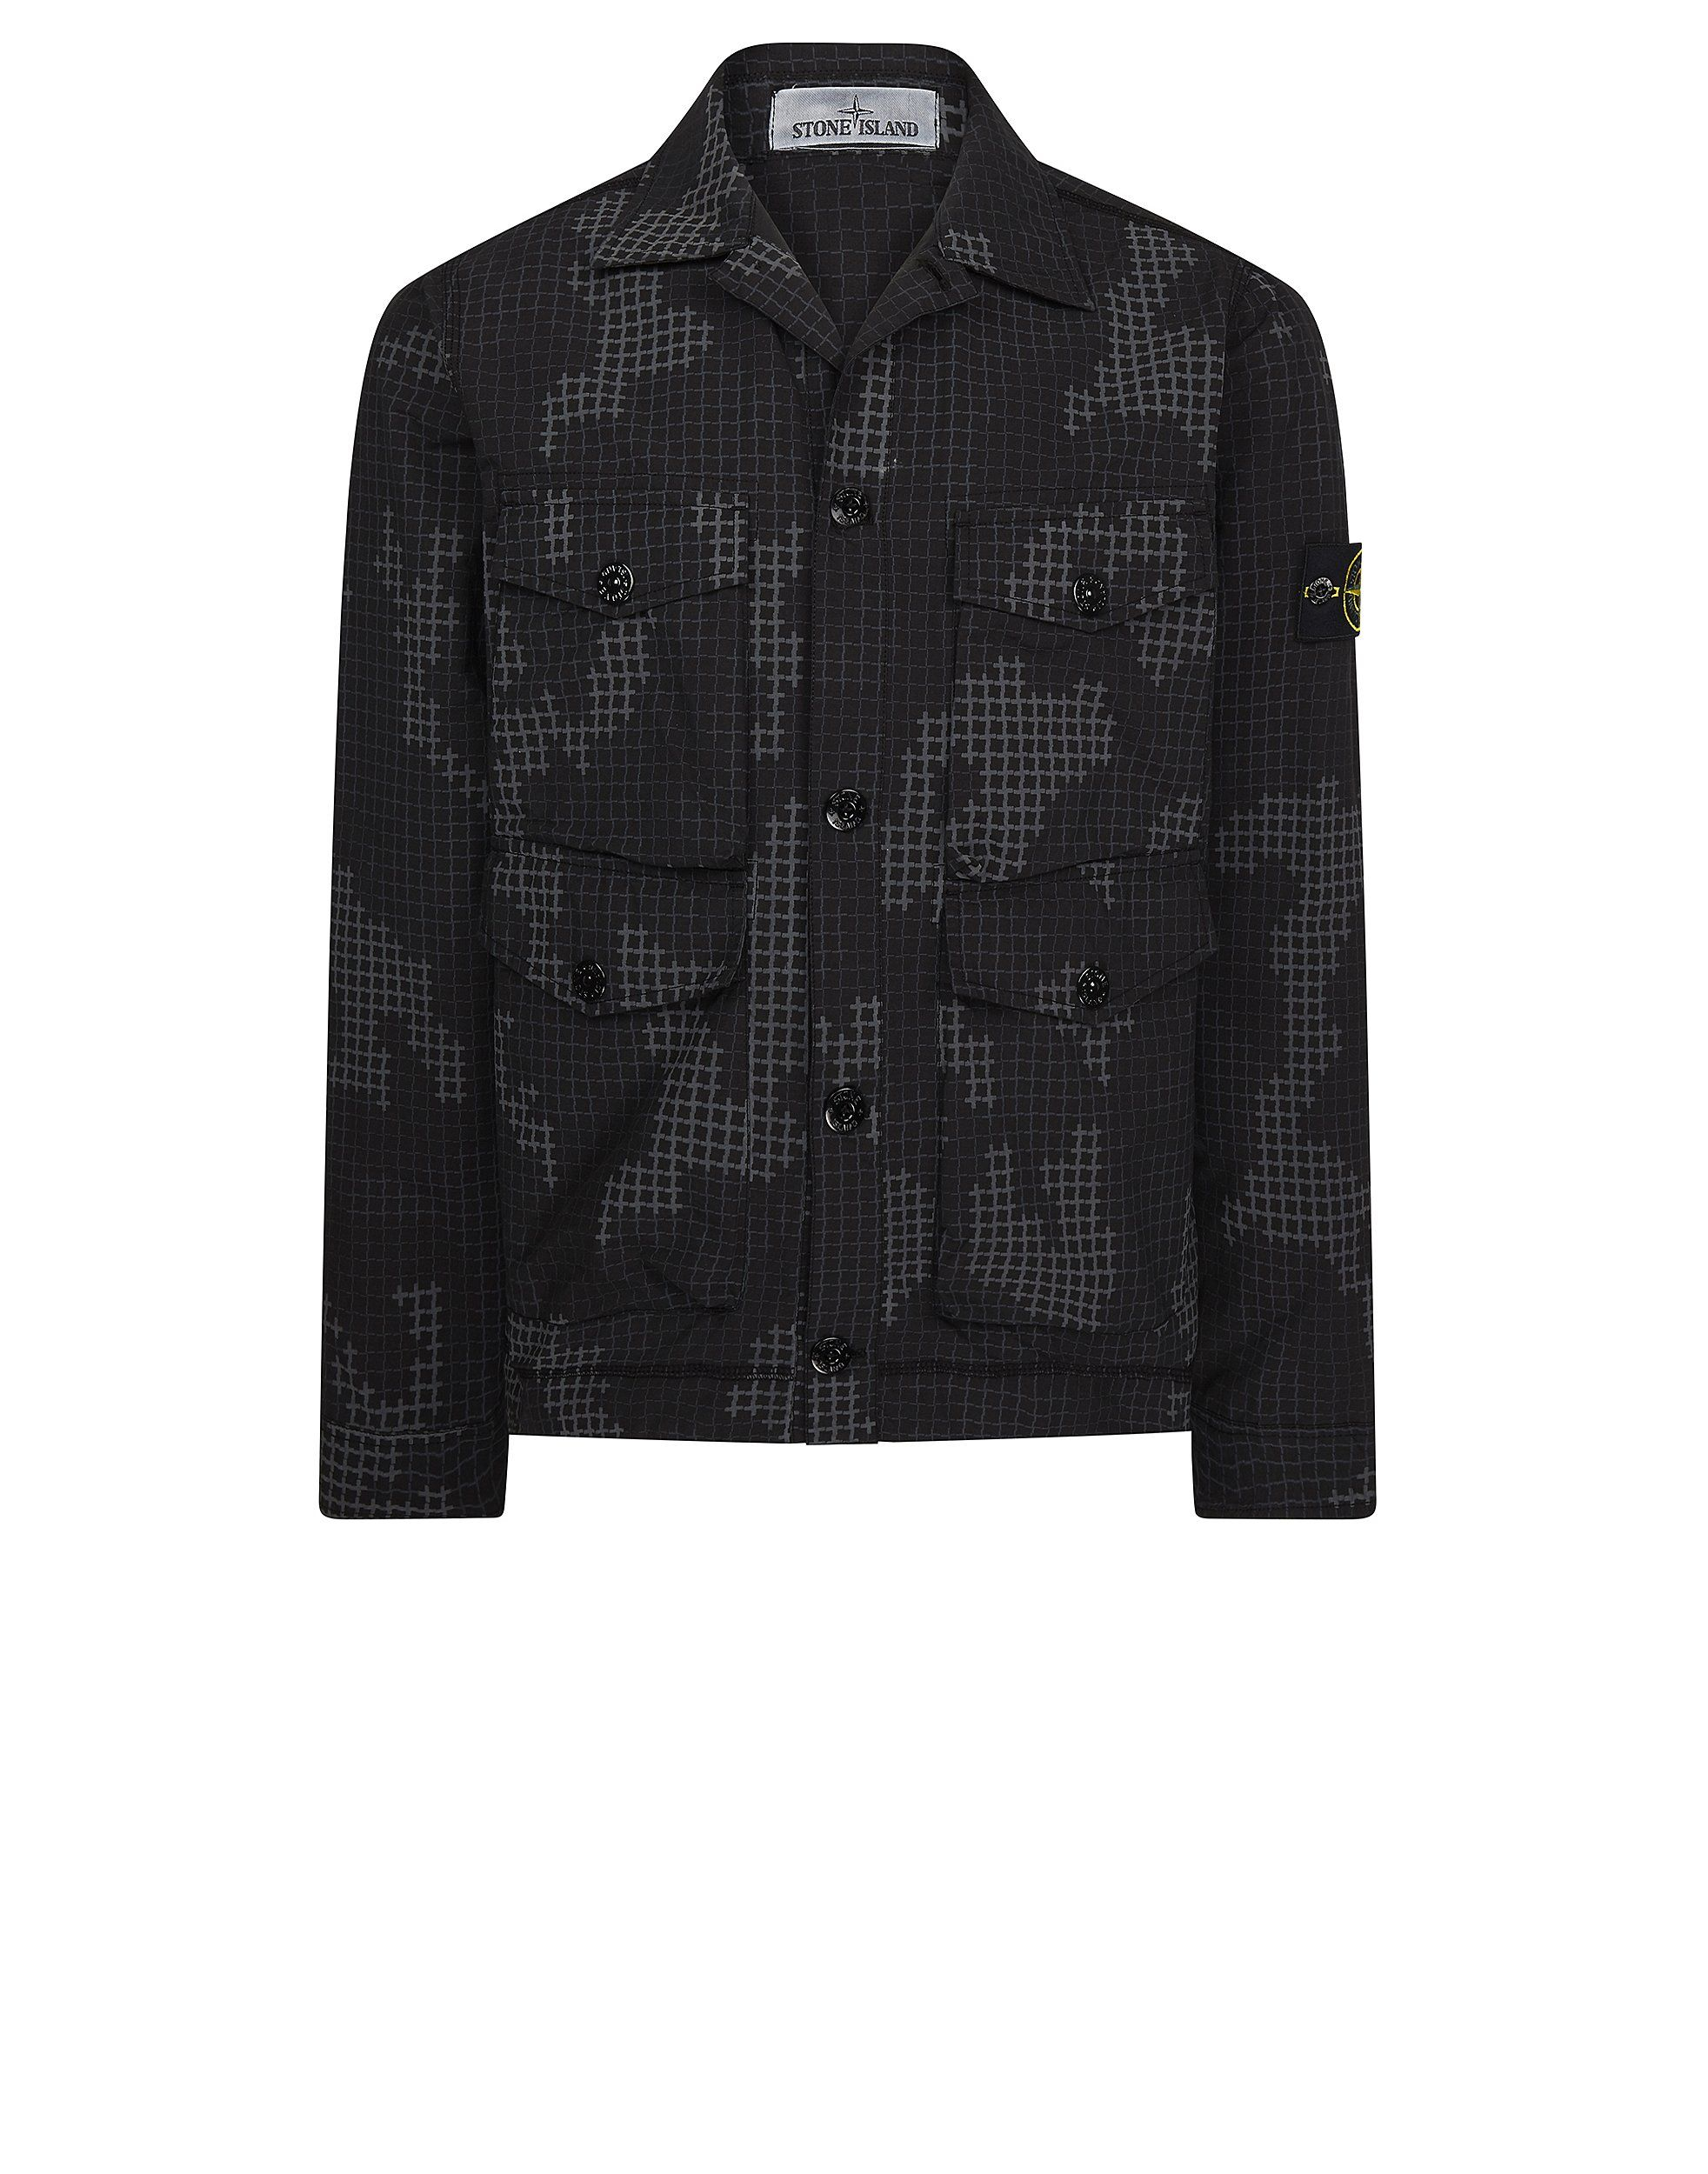 bd44ce2f53c54 112E3 FULL COMPACT RIP STOP GRID CAMO Overshirt in Black | Fashion ...